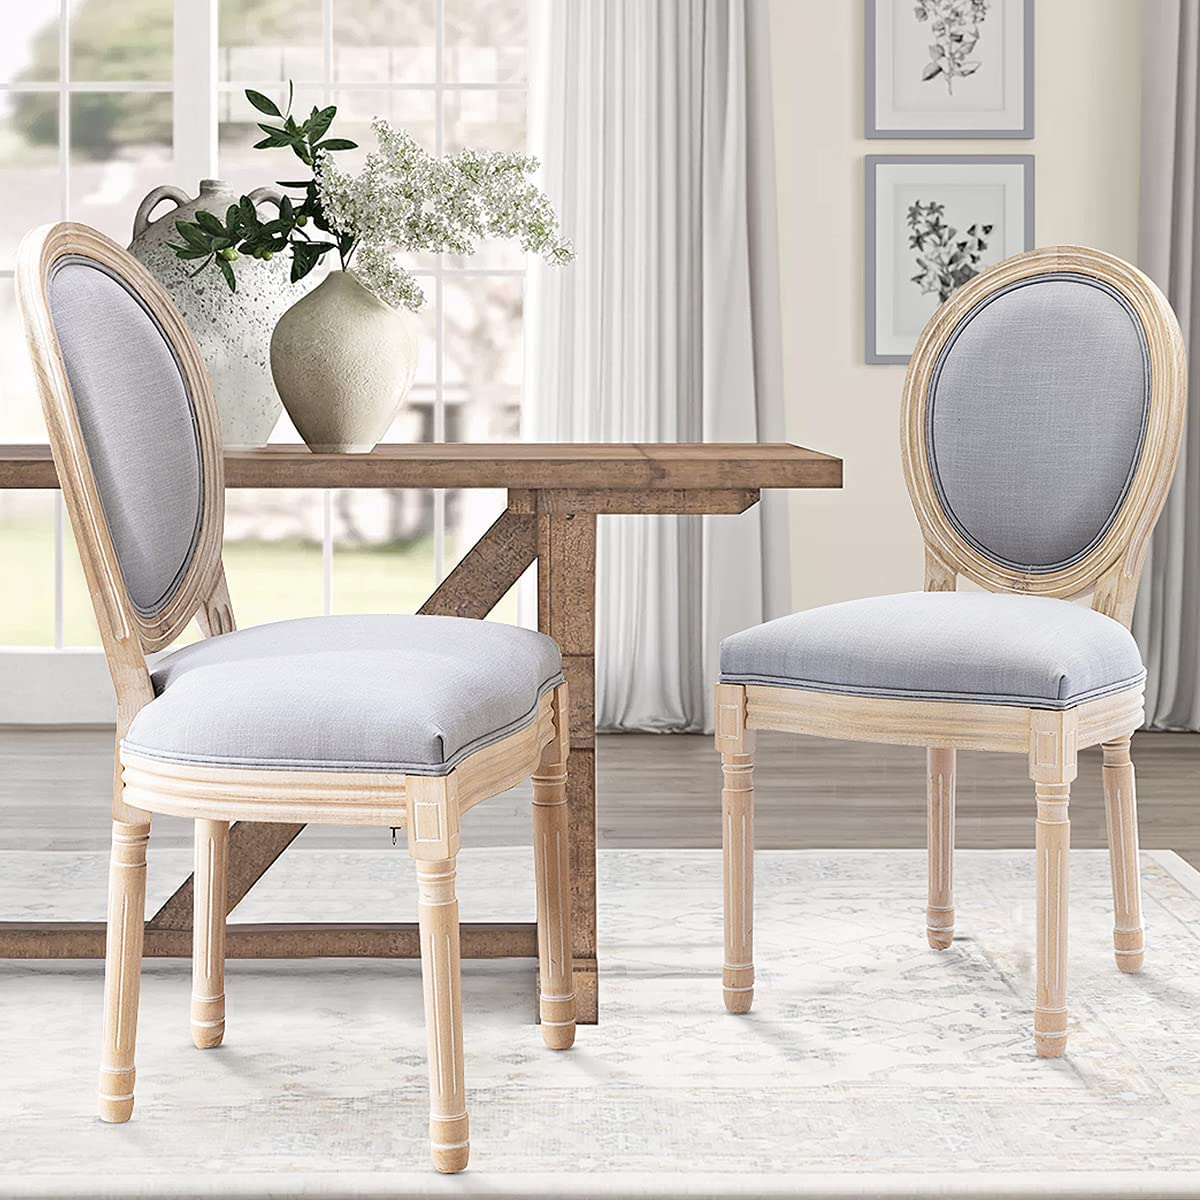 Recaceik Farmhouse Dining Chairs Limited time trial price 2 trust PCs Bedroom Side French Chai